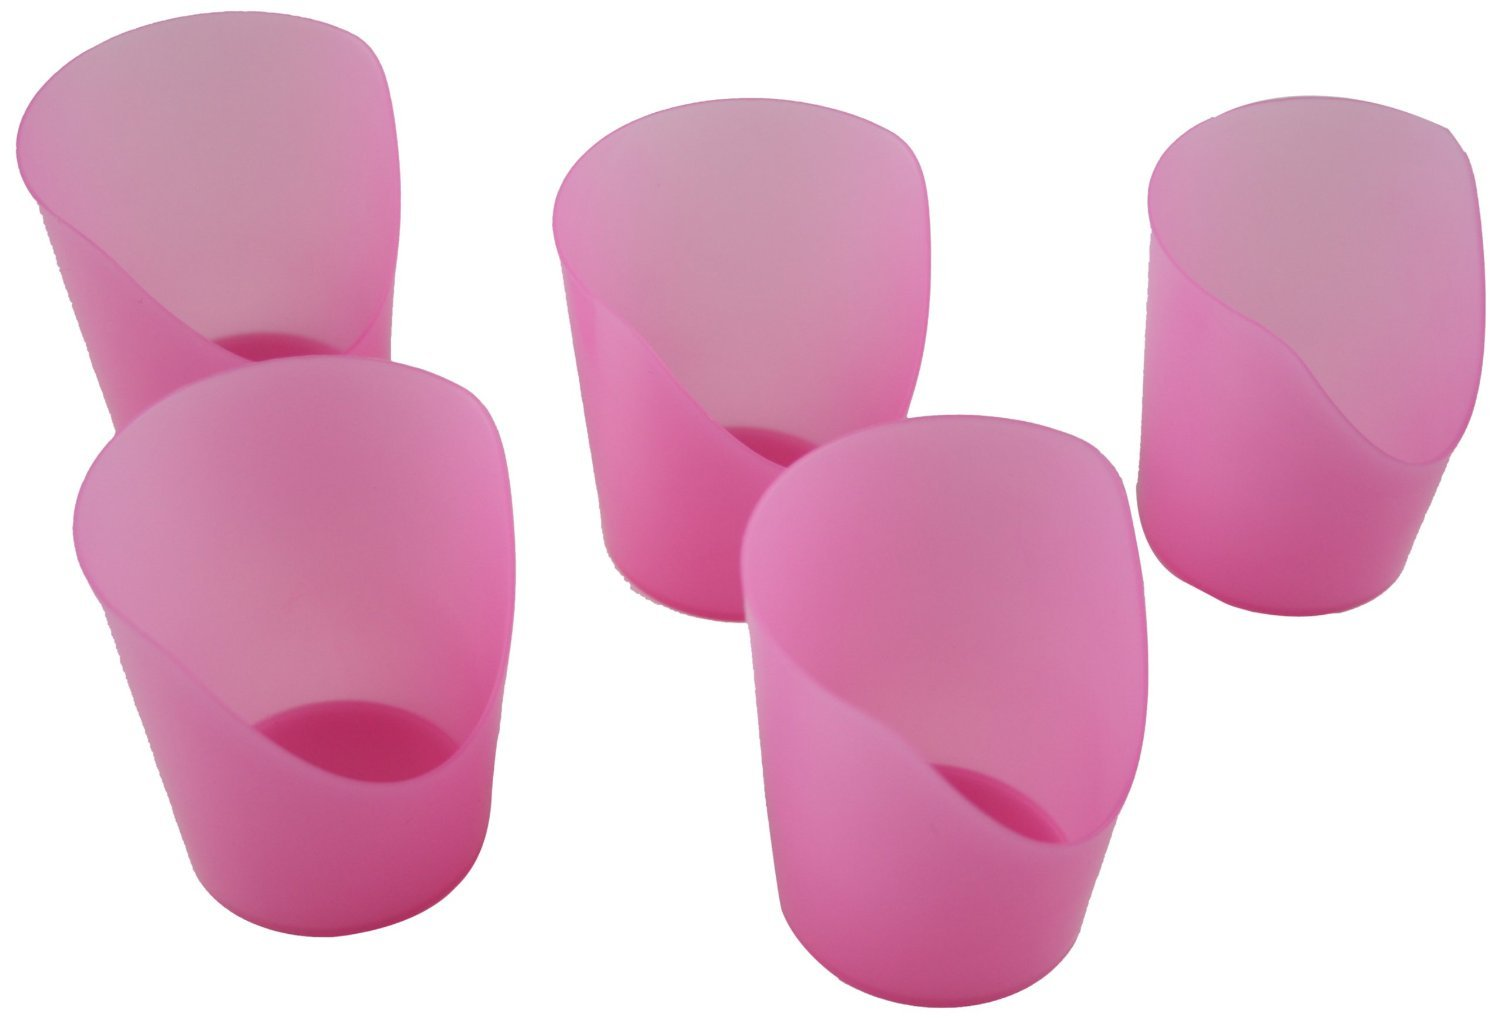 Flexi-Cut Cup (Pack of 5) - 30ml (1fl.oz) Pink